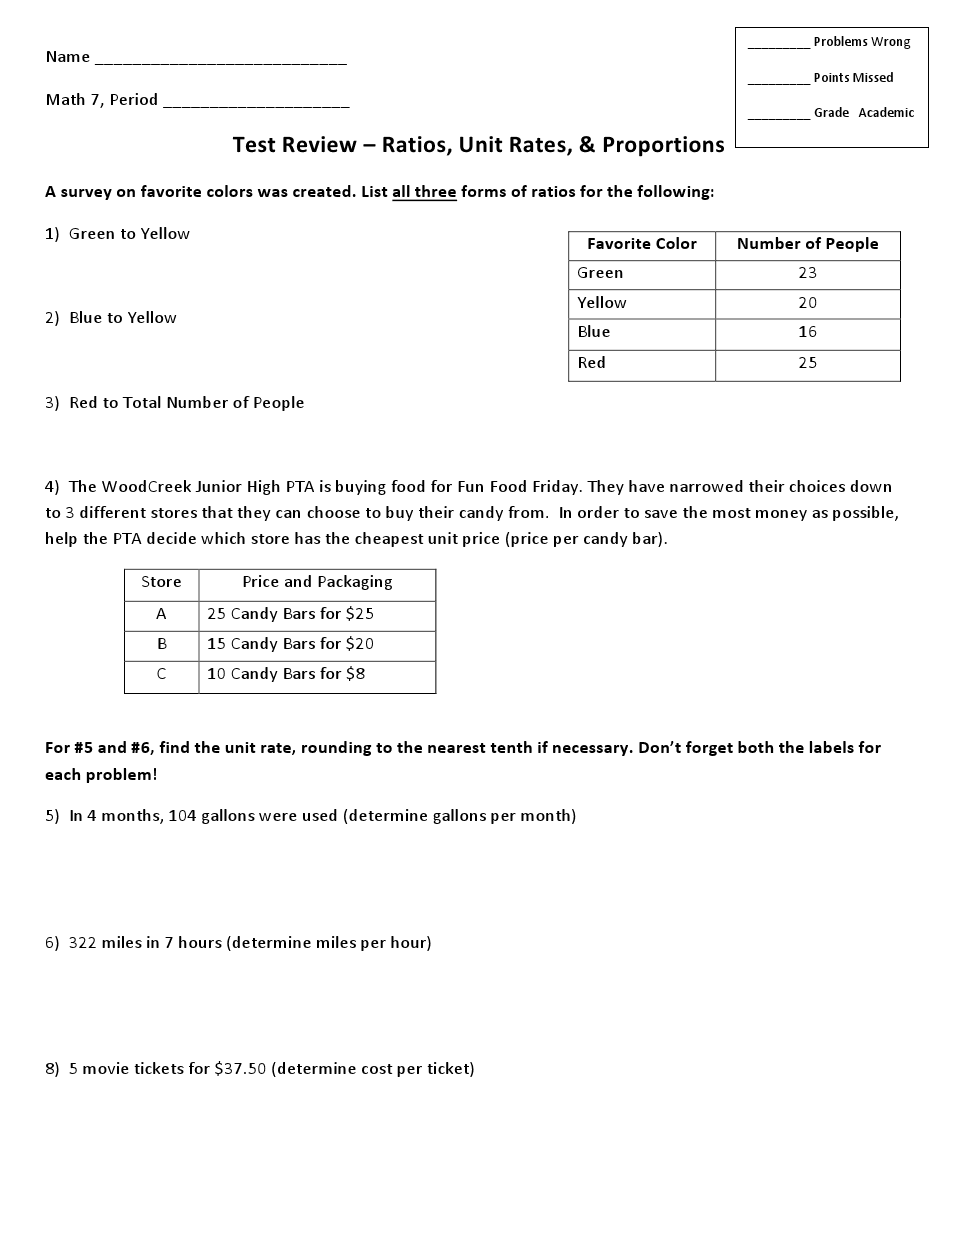 Thursday AC- Test Review- Ratios, Rates and Proportions.pdf